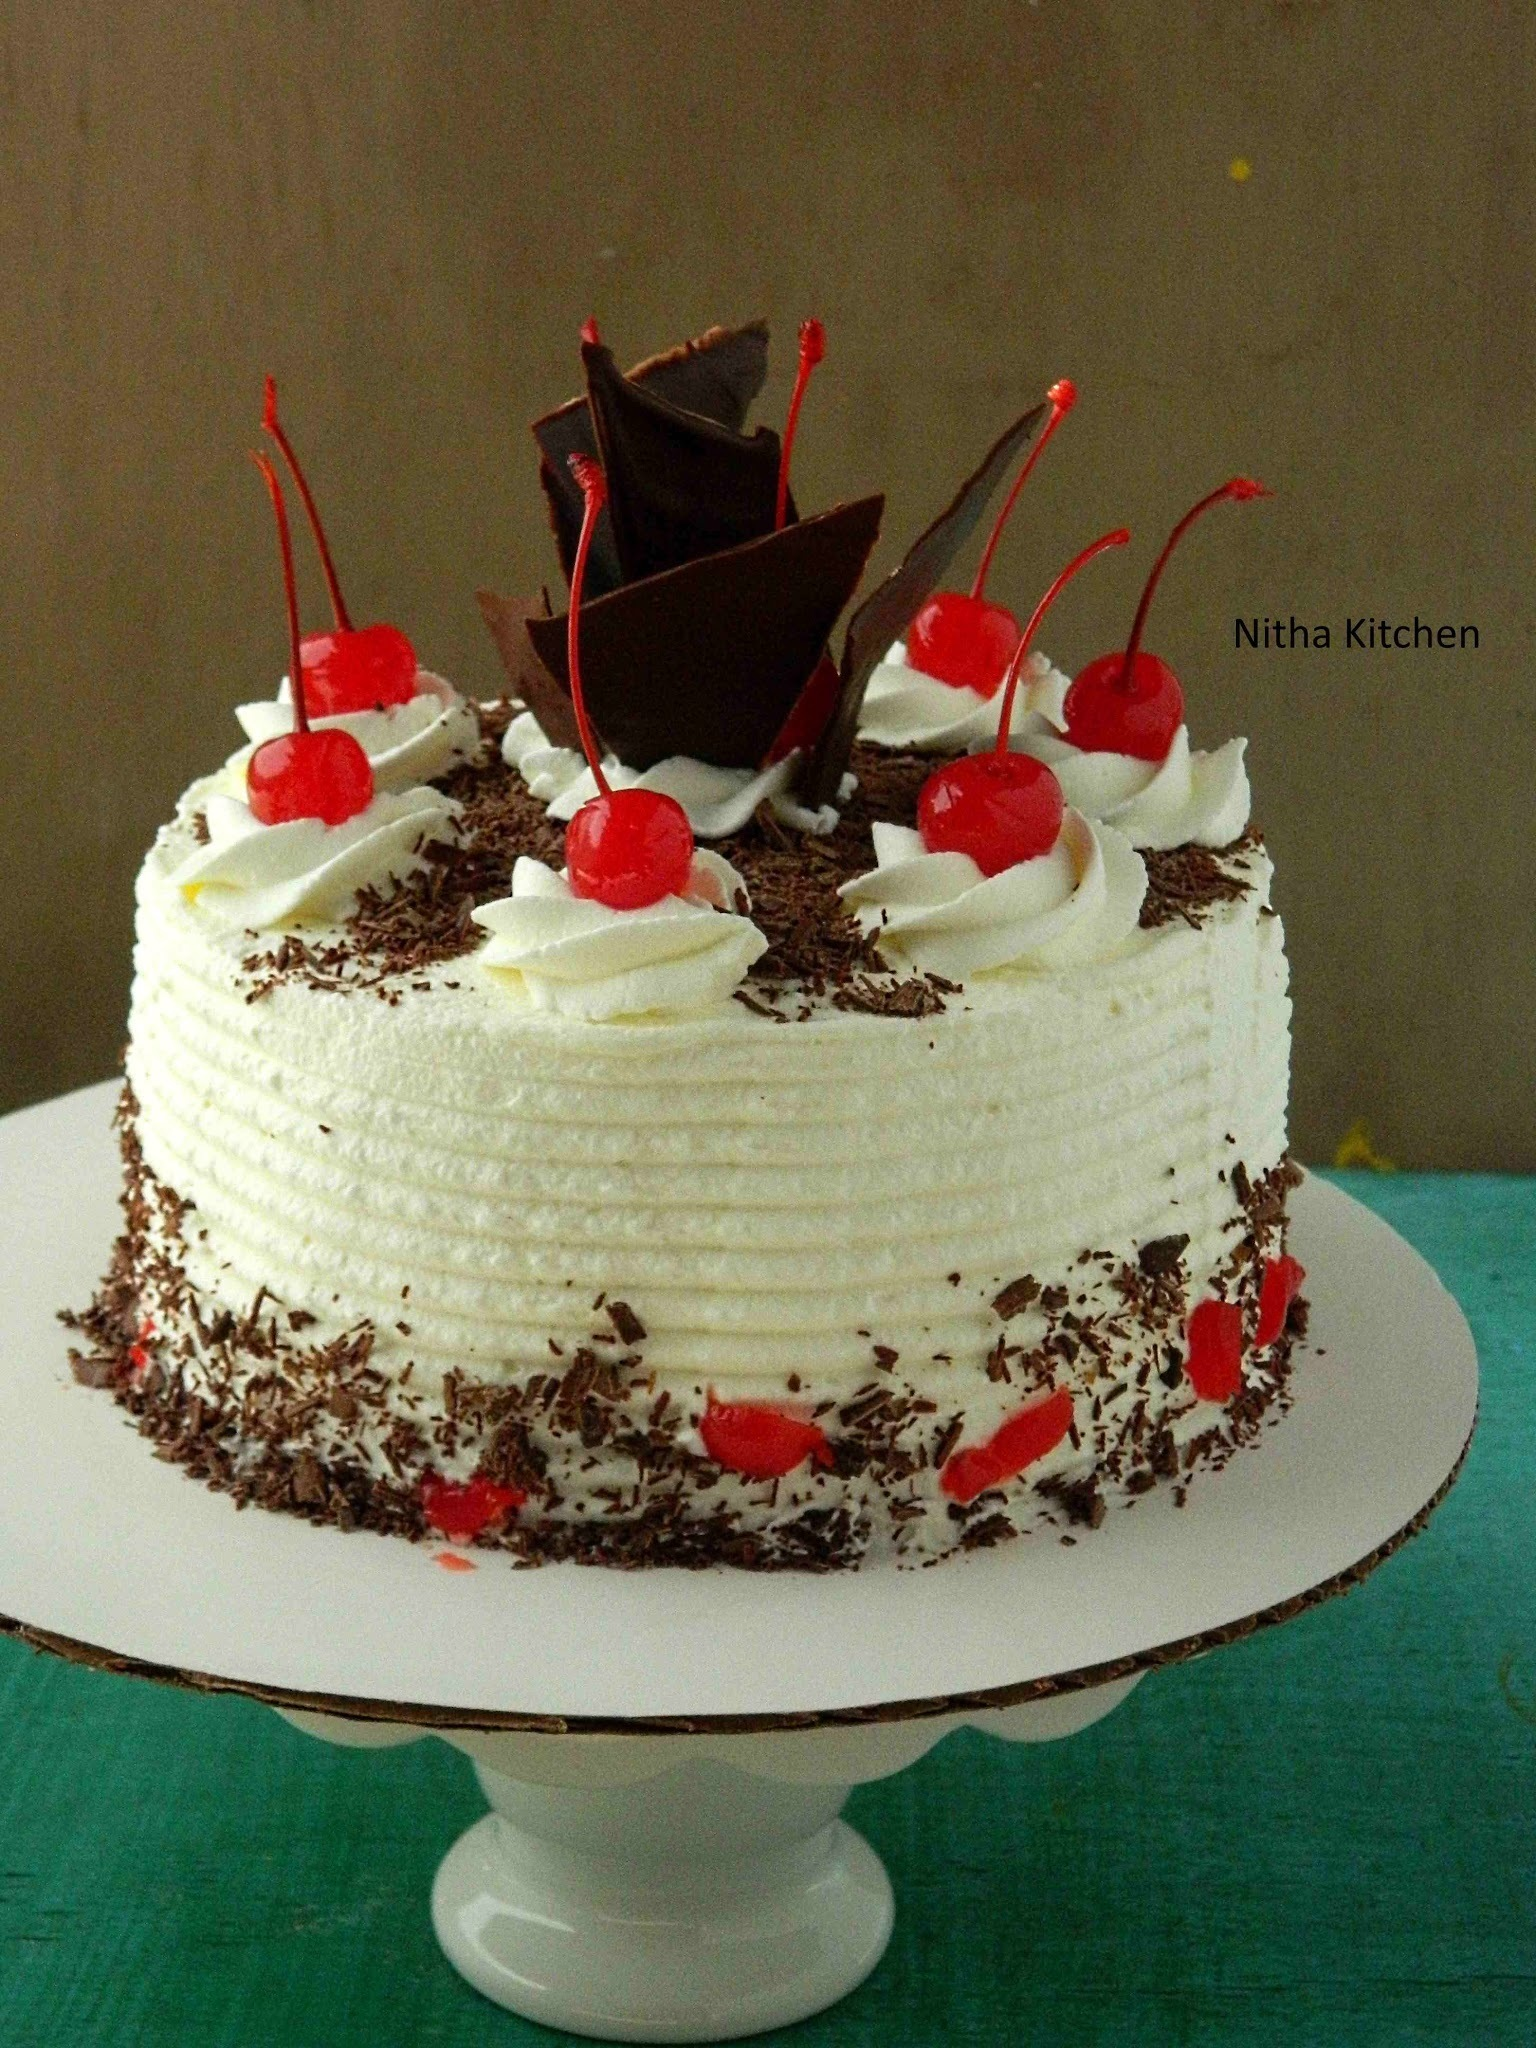 Eggless Black Forest Cake with layers of Hot Chocolate Sponge | A Scratch Recipe with step by step Pictorial For Beginners!